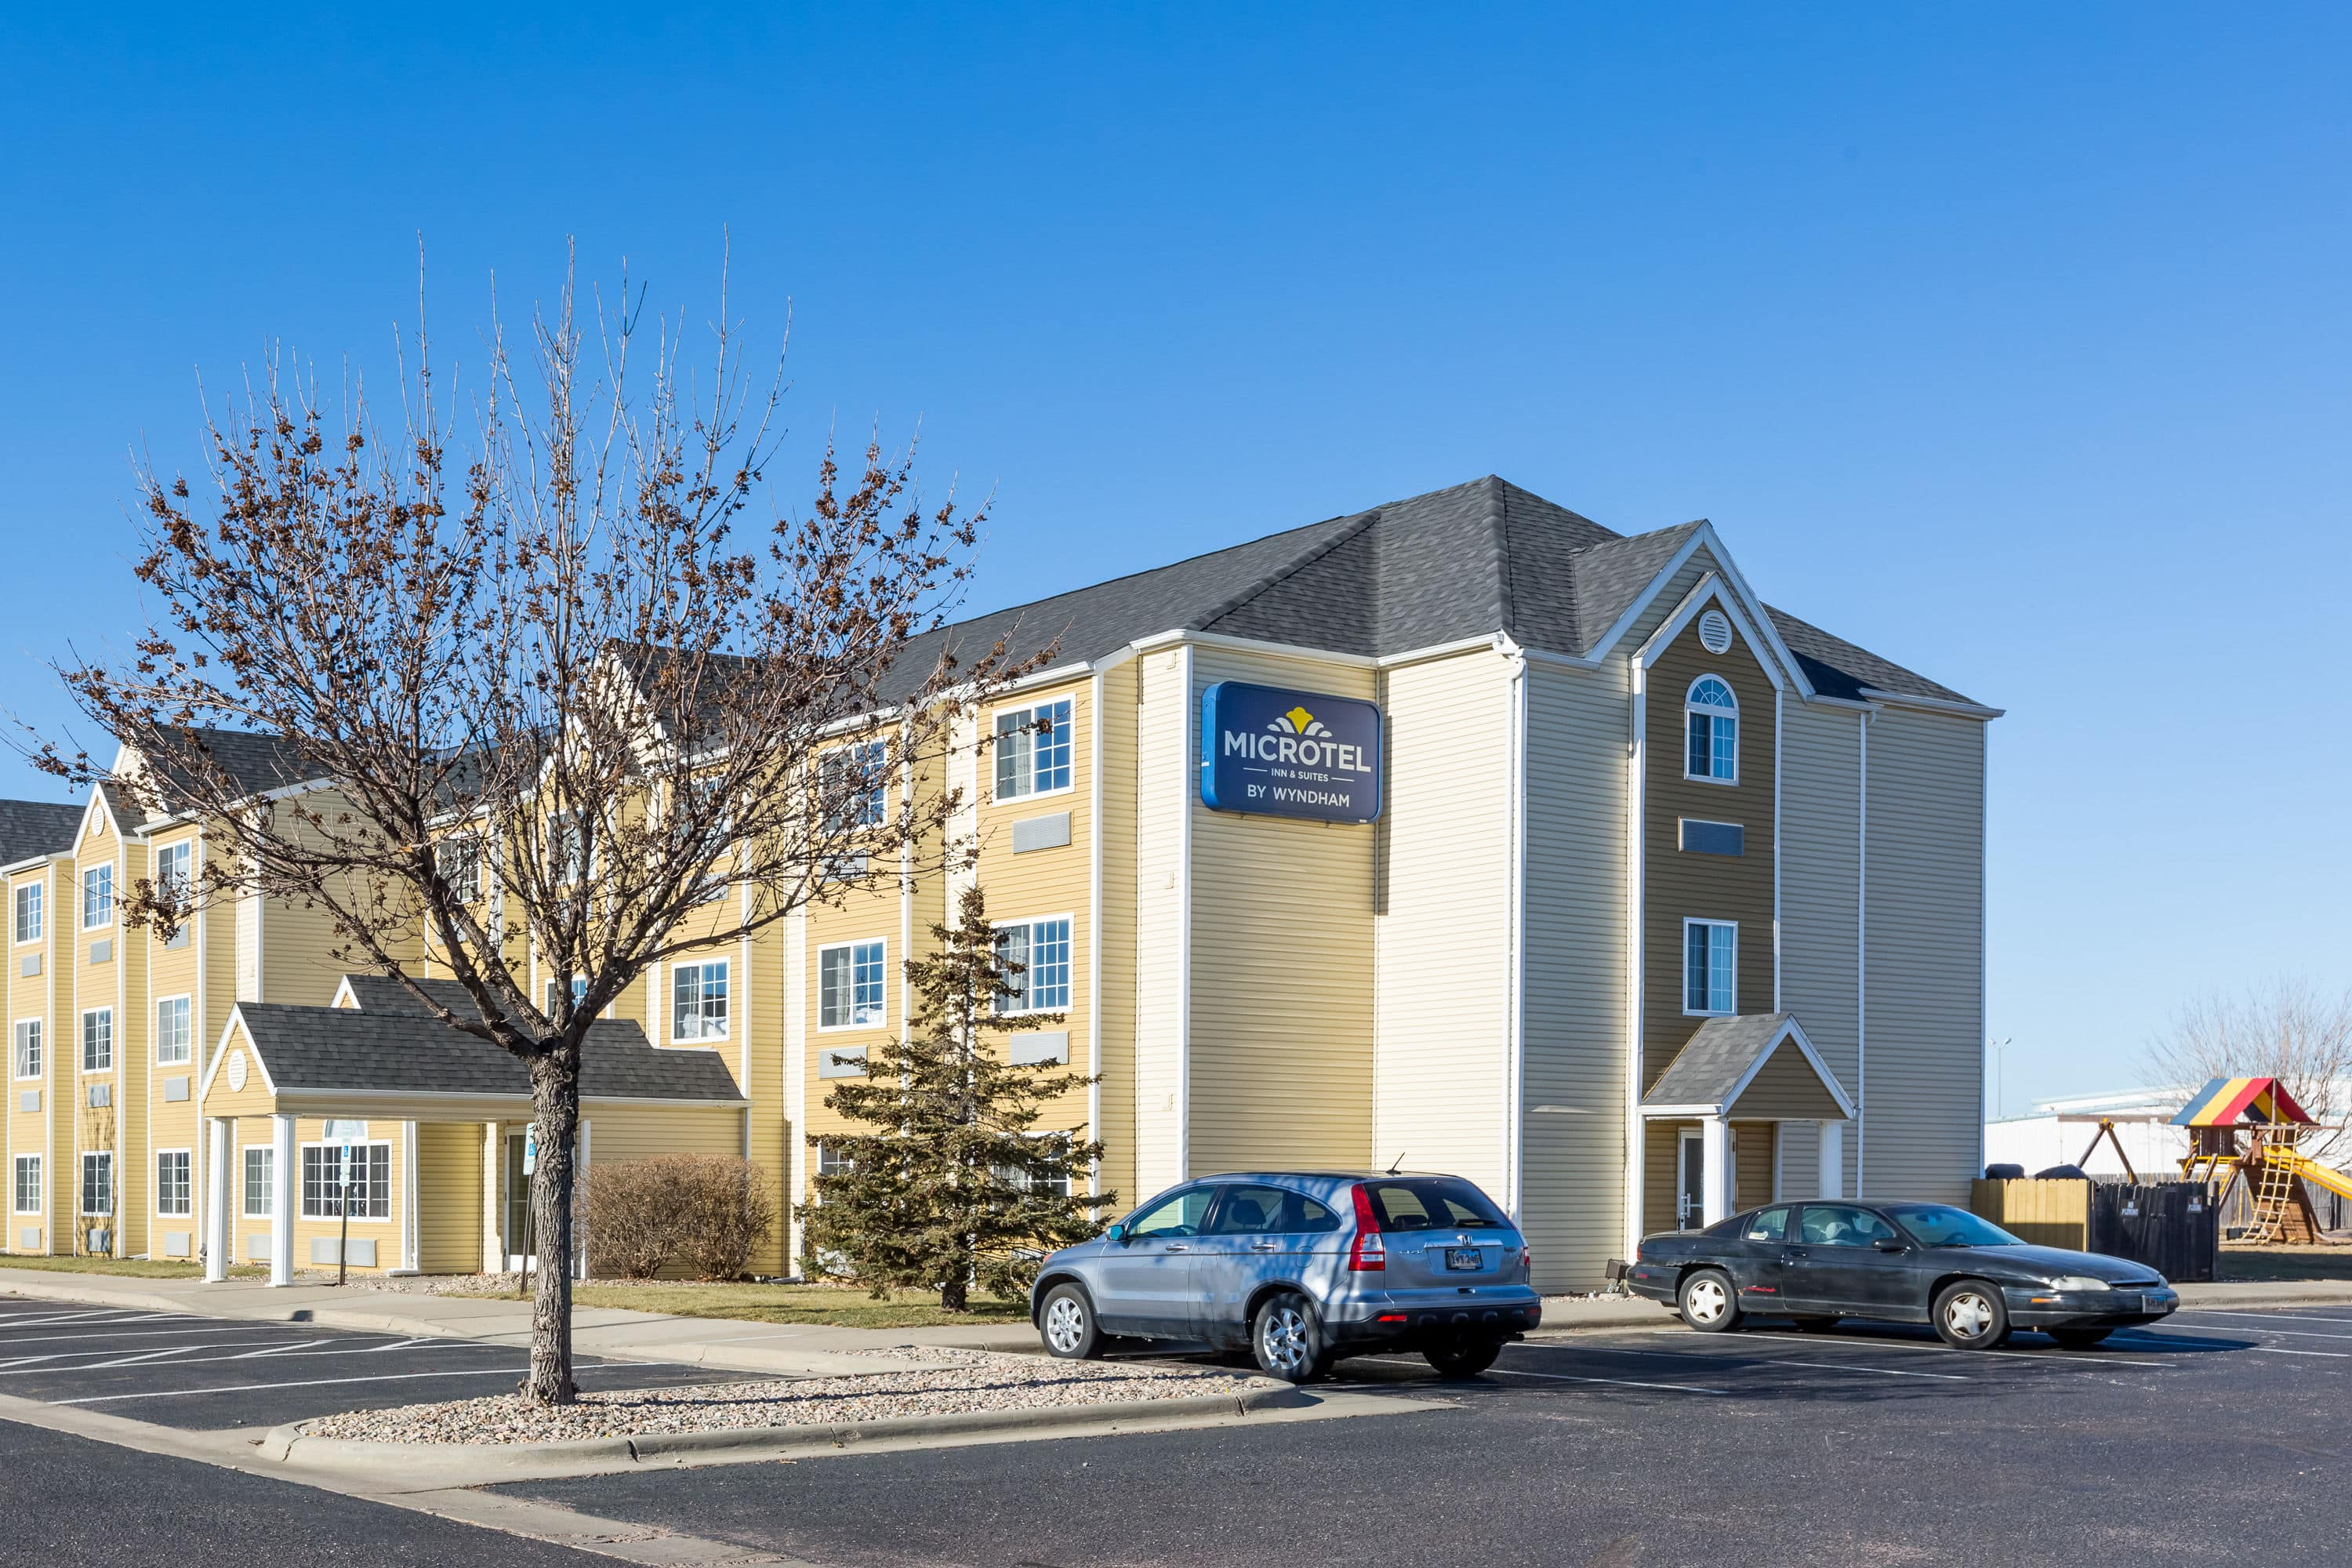 Microtel Inn & Suites by Wyndham Sioux Falls | Sioux Falls, SD Hotels